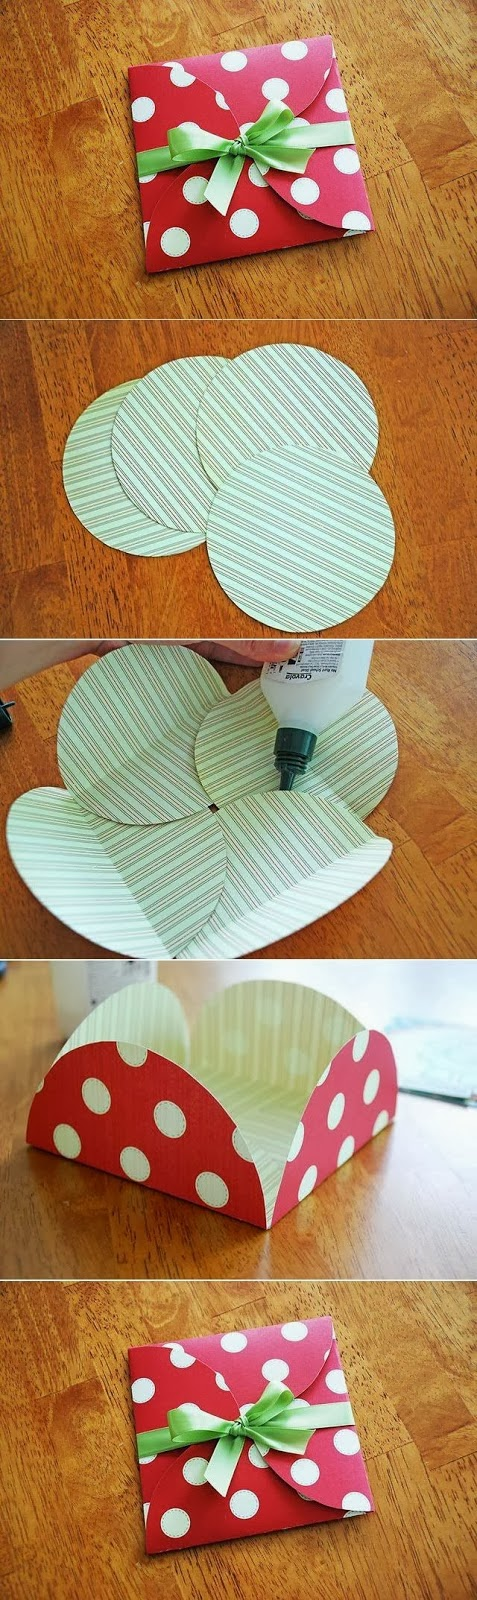 Make a Simple Beautiful Envelope